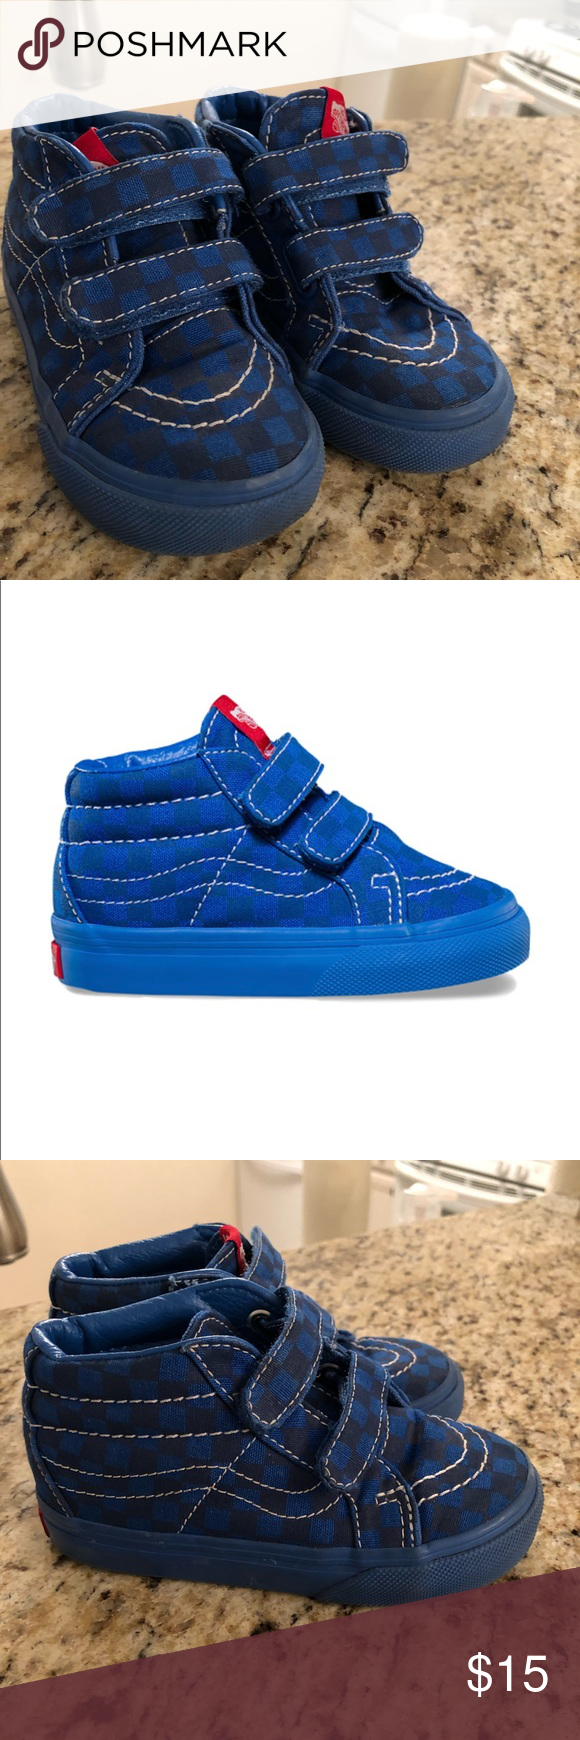 c9e636af3b67 Awesome Blue tone on tone checkered mid top Vans! Rare find! Vans The Mono